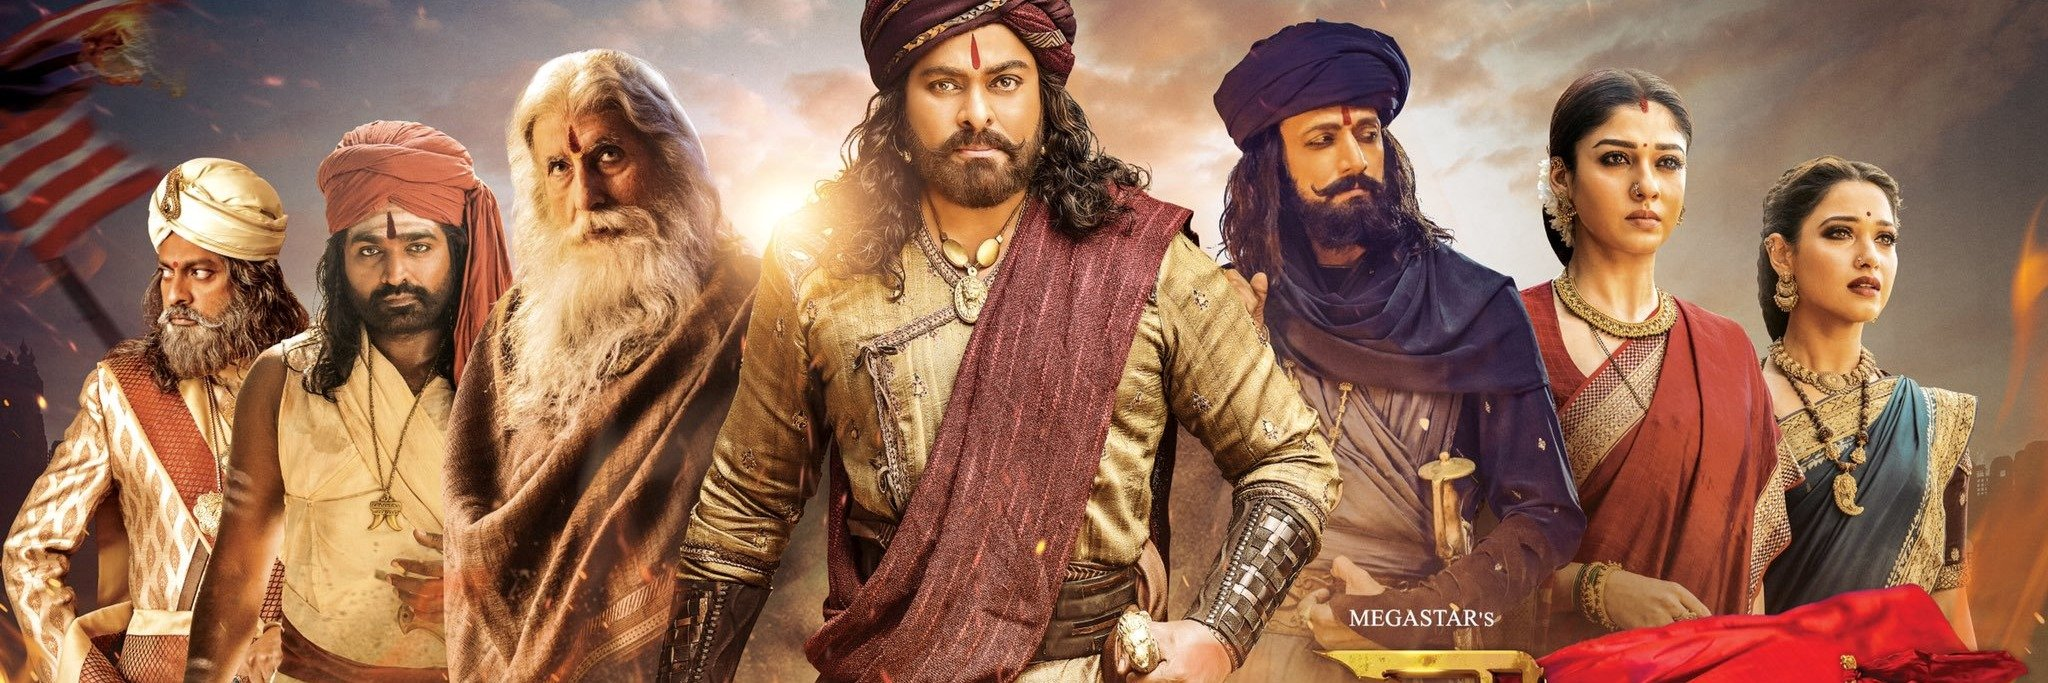 Sye Raa Premier Show with Eng Subtitles